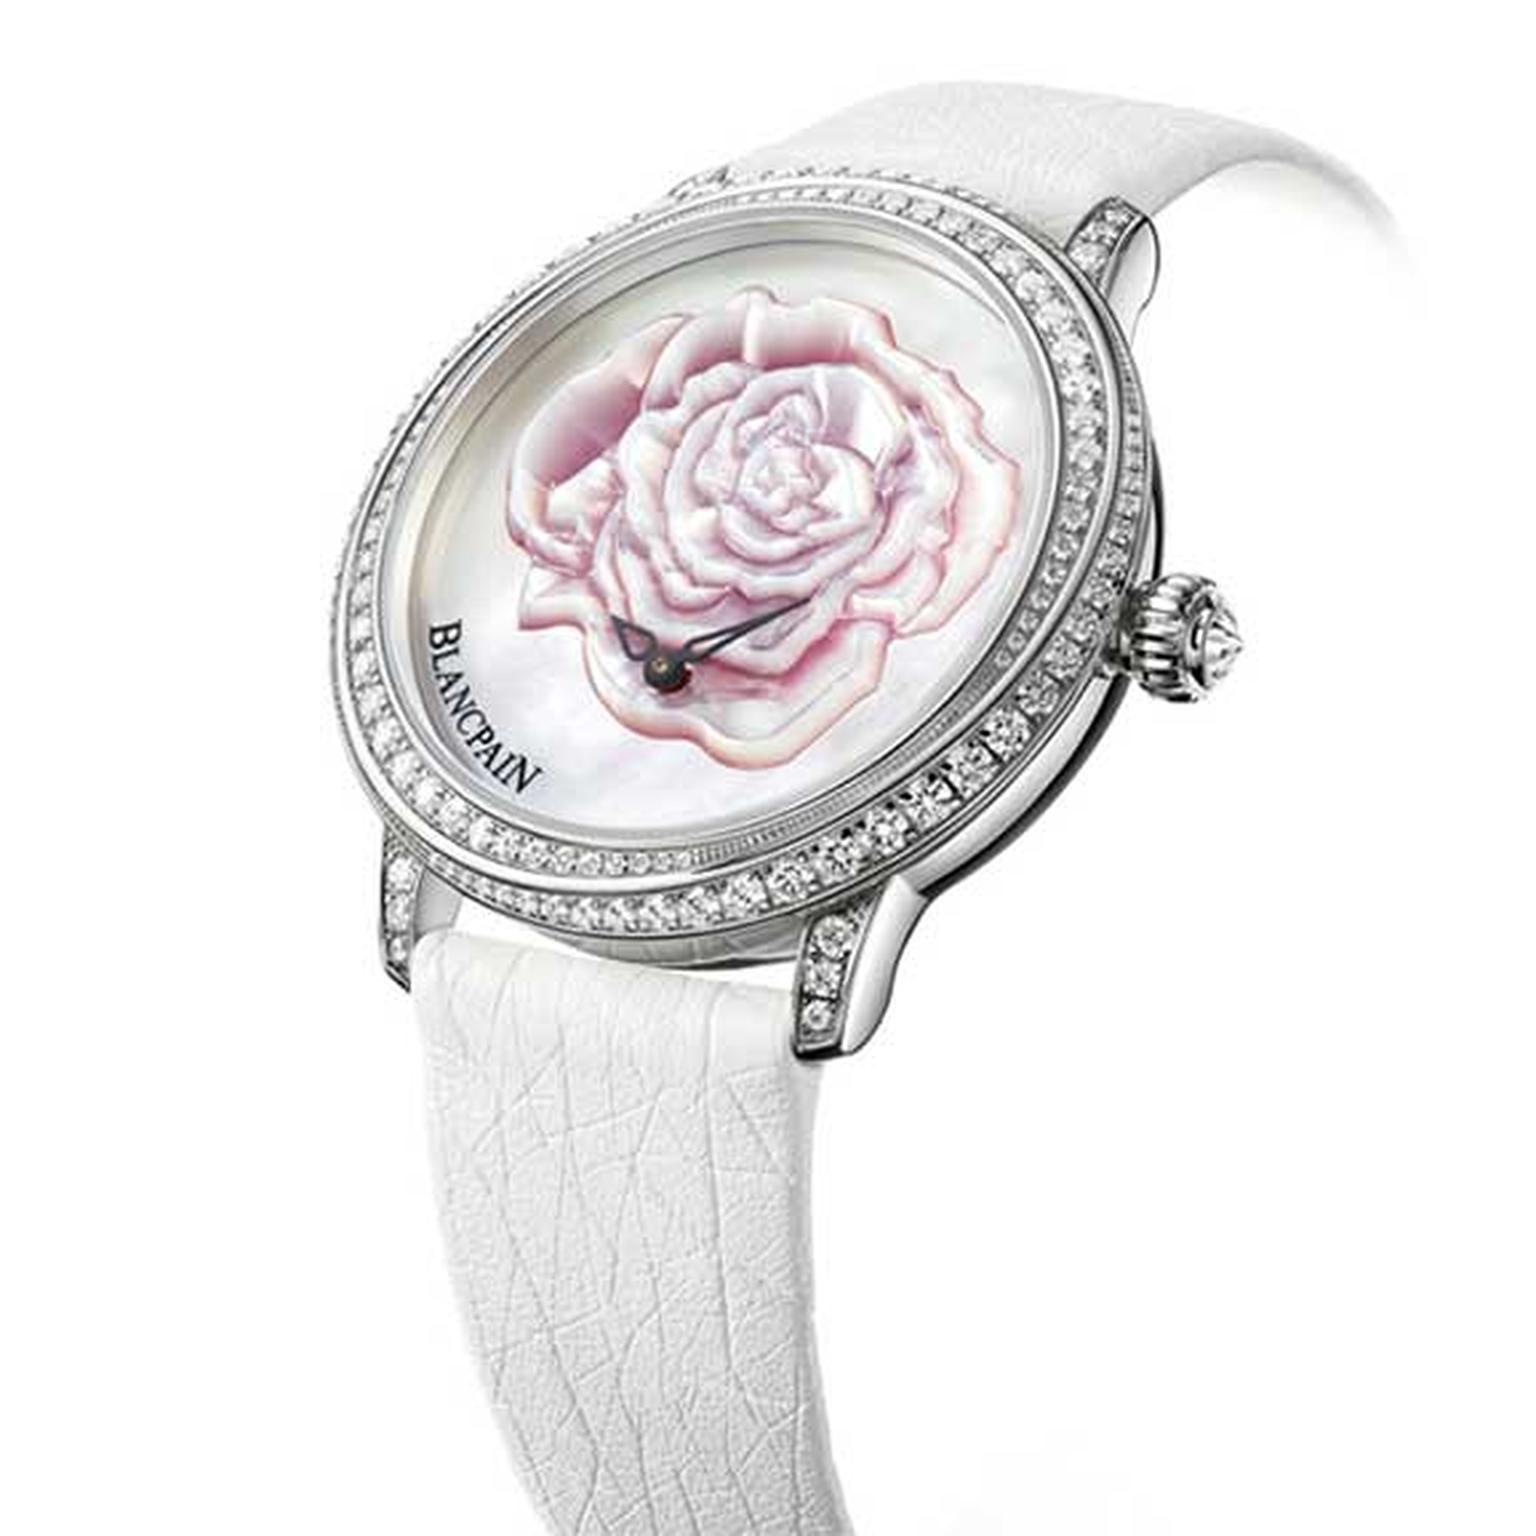 Blancpain valentines day ladies watch